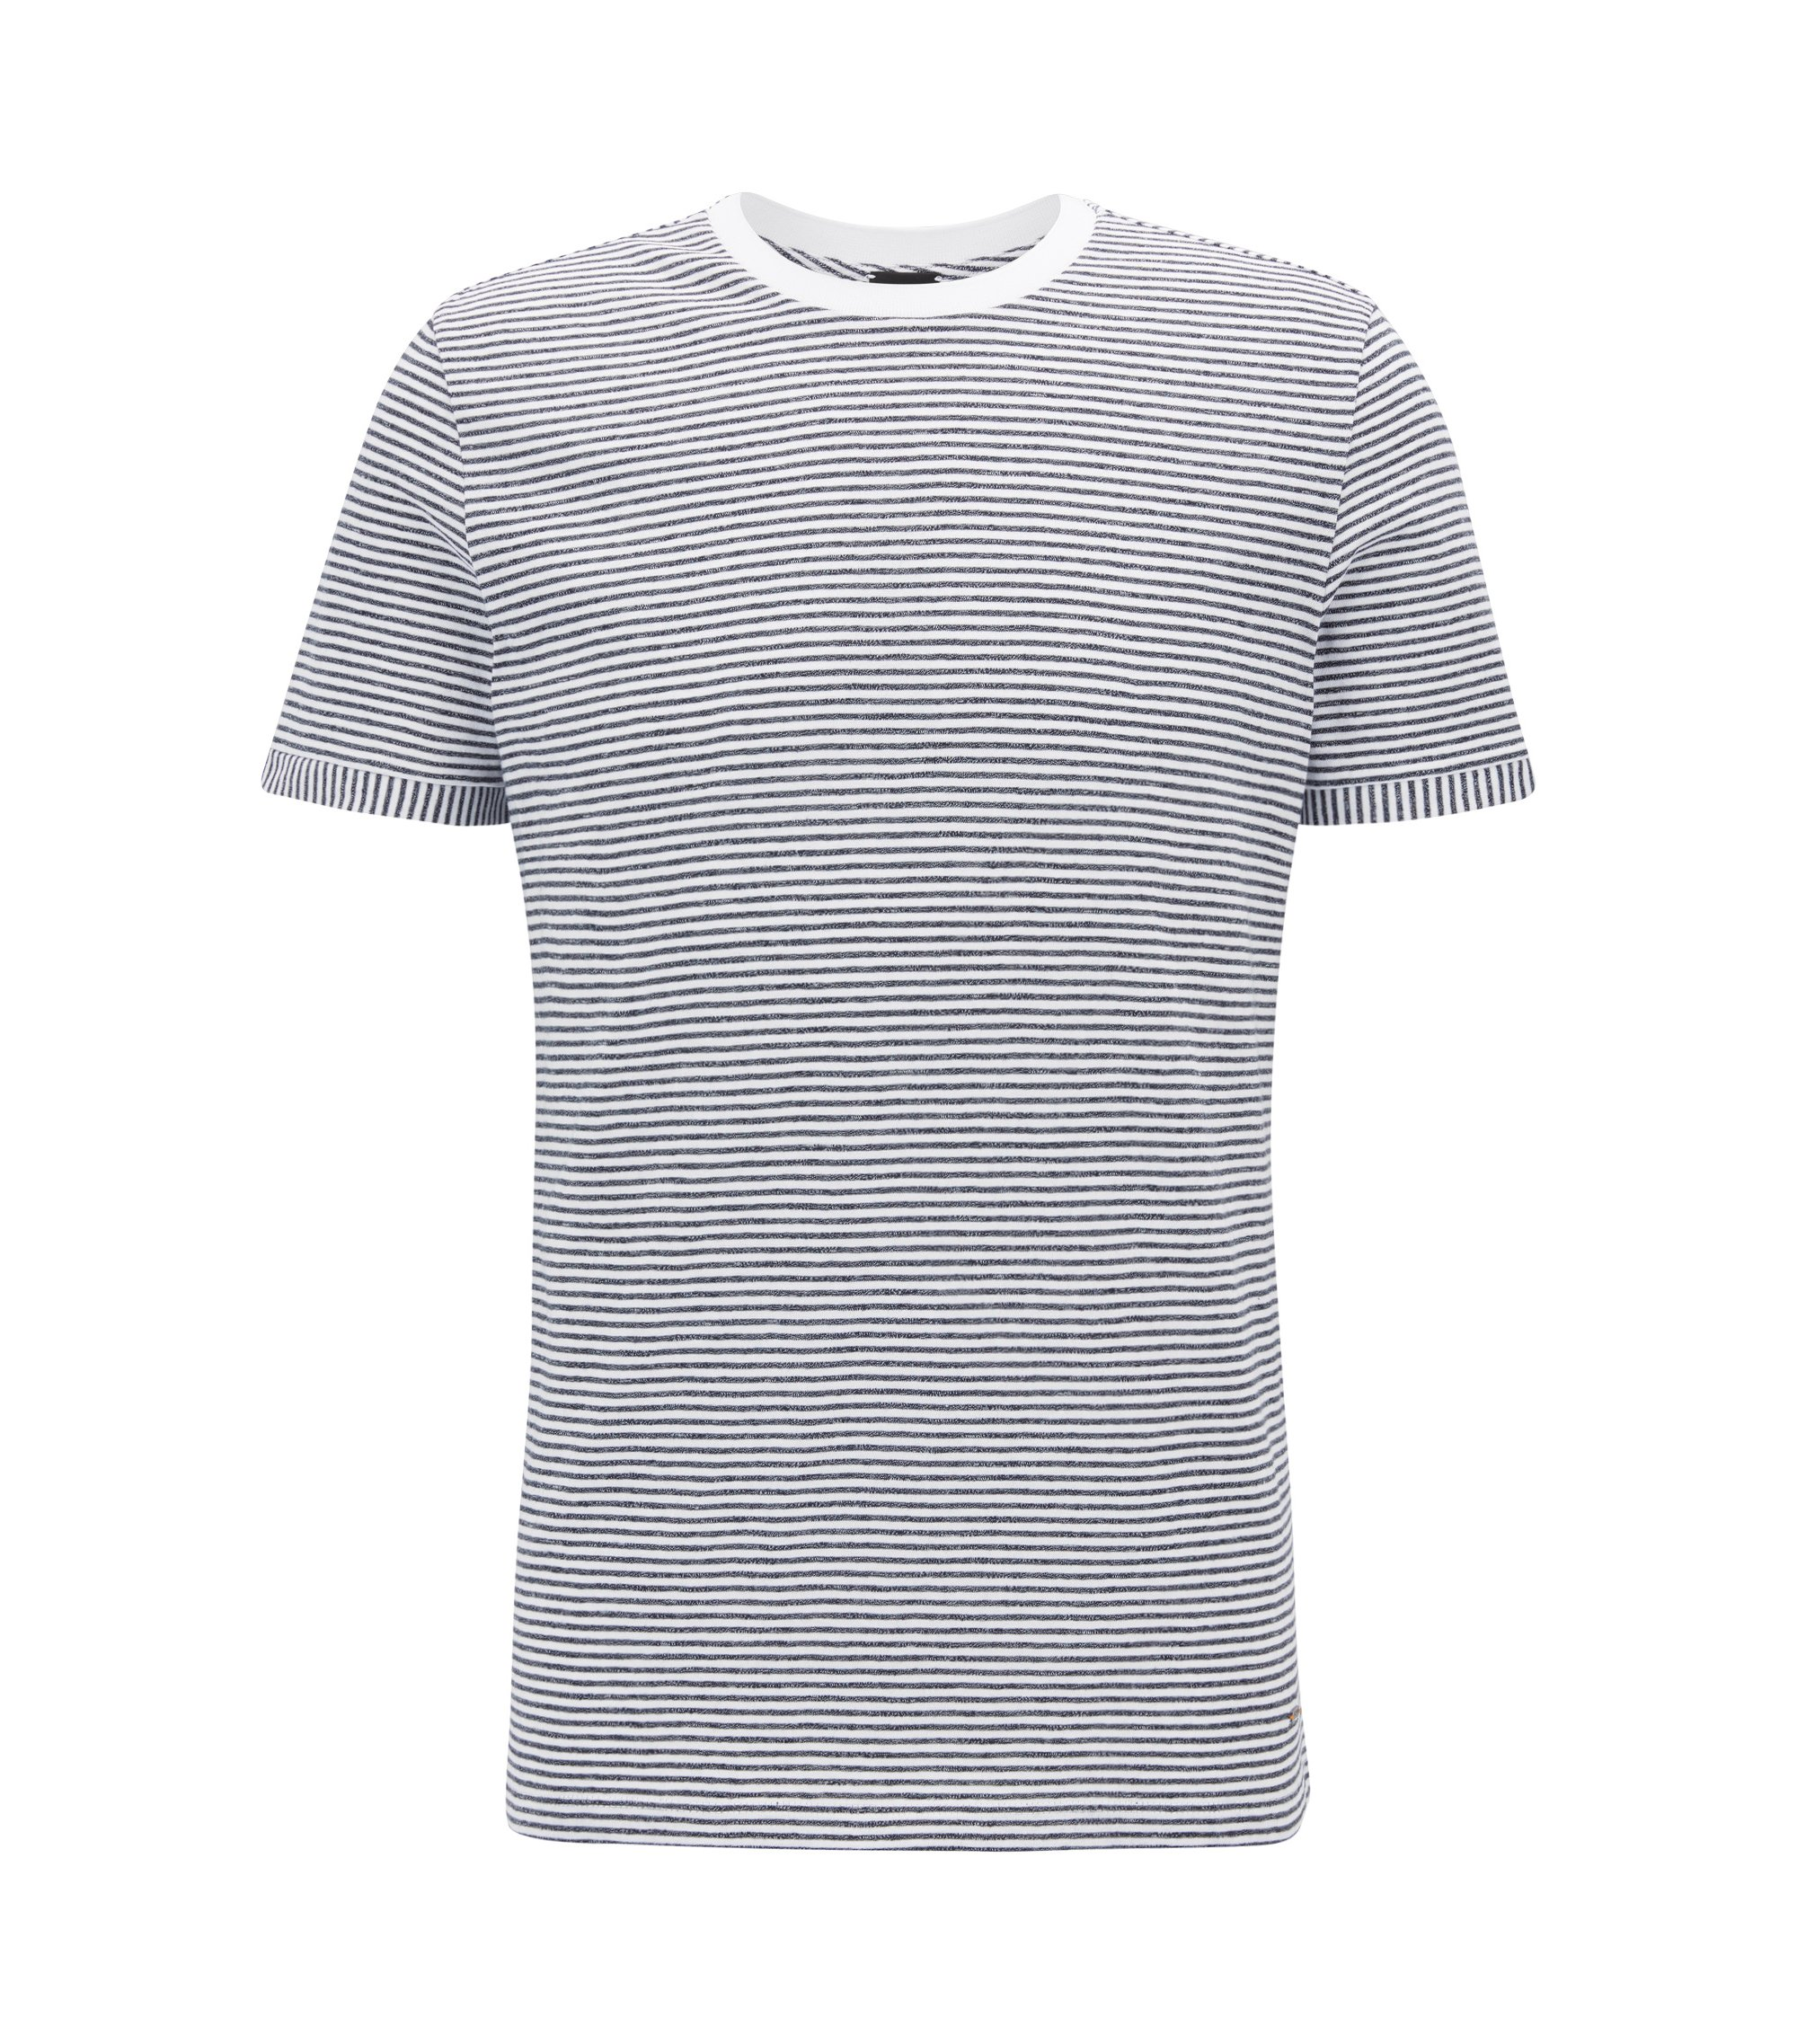 T-shirt Regular Fit en coton mélangé mouliné, Blanc